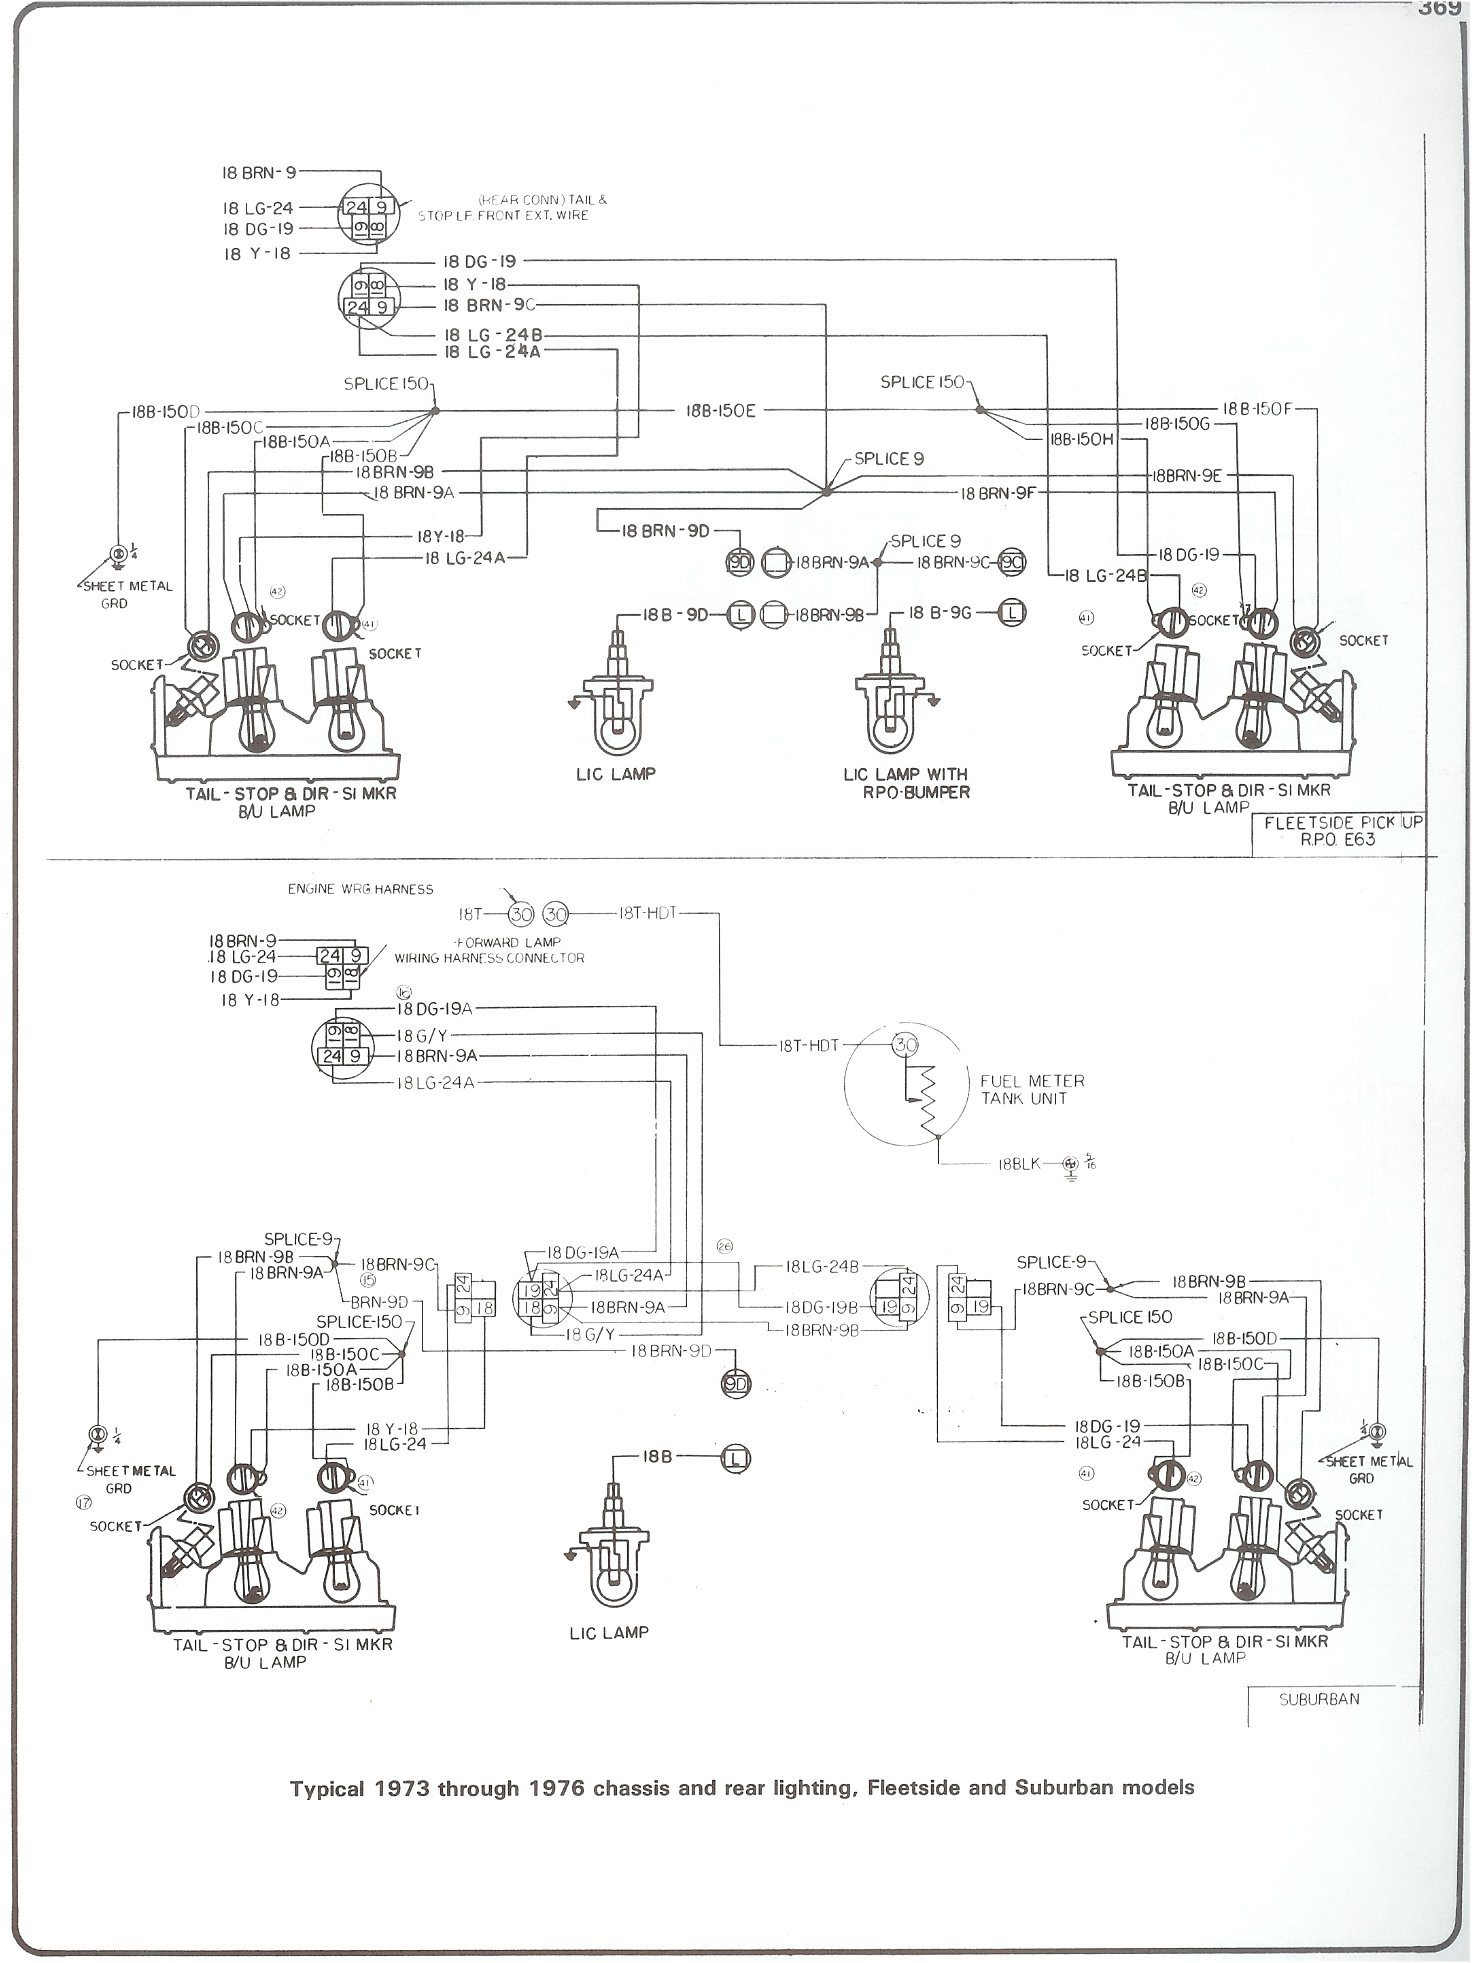 73 76_chass_rr_light_fleet_burb complete 73 87 wiring diagrams 1986 Chevrolet Caprice at creativeand.co